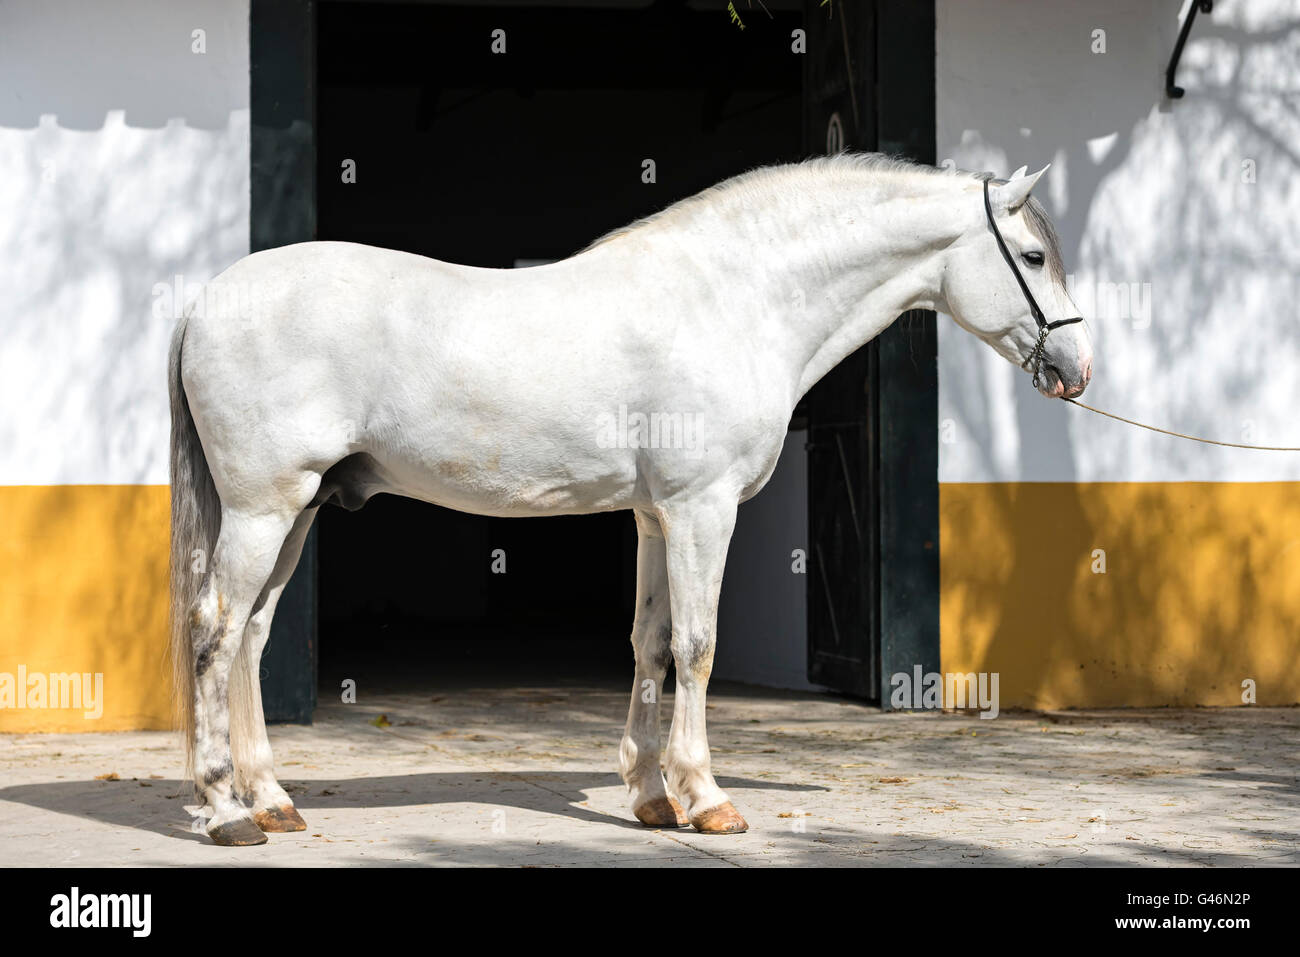 Conformation shot of a Spanish horse - Stock Image